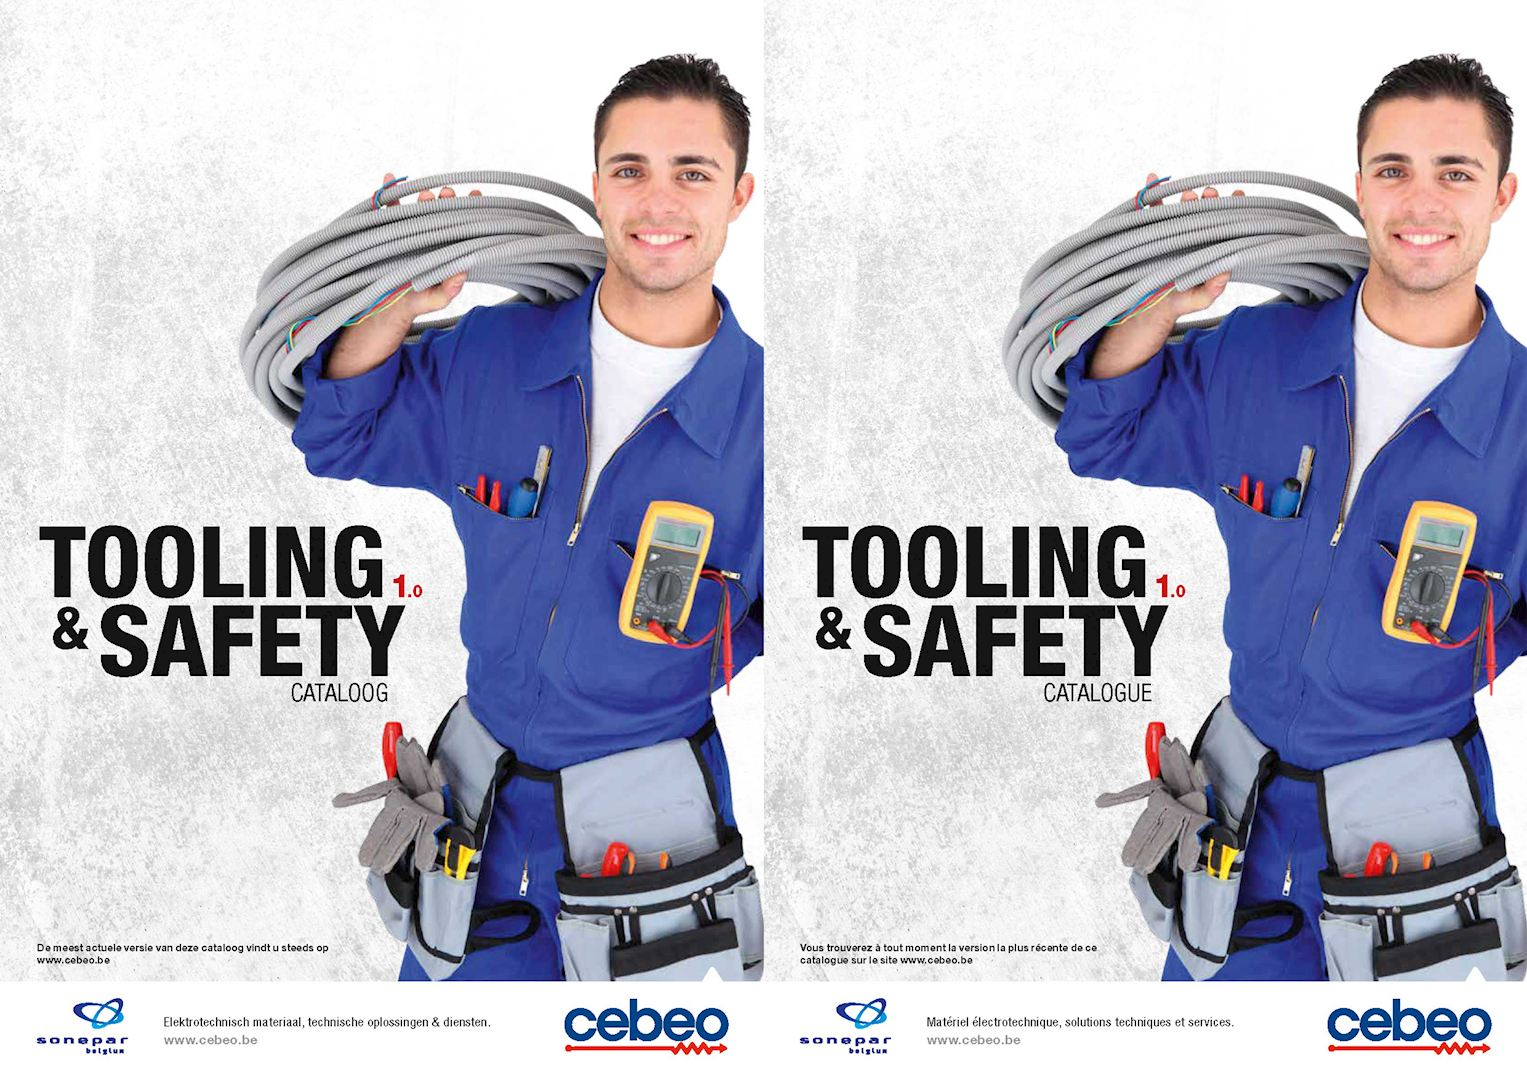 Catalogue Tooling & Safety